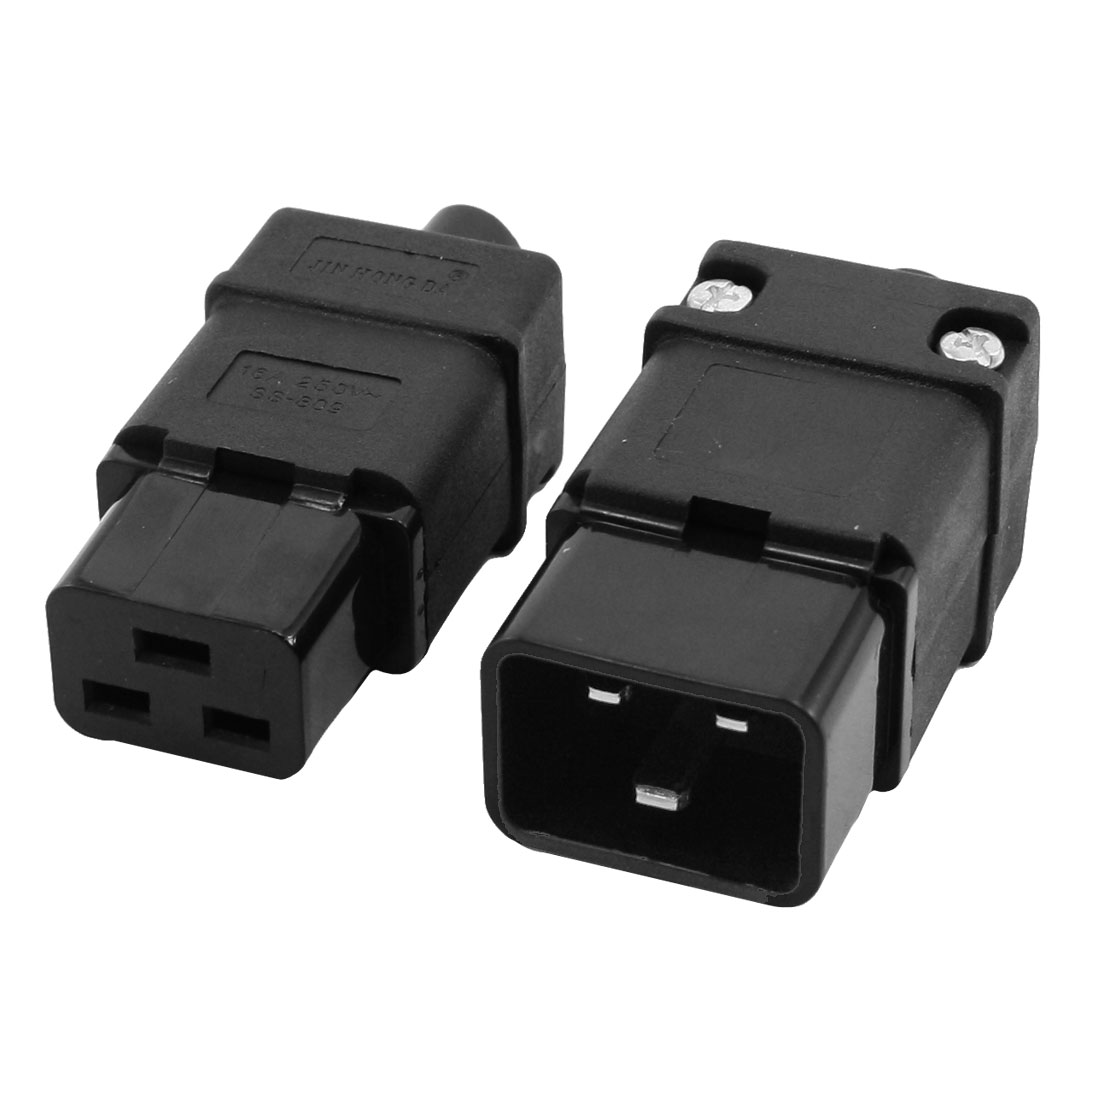 2 in 1 16A 250VAC IEC320 Series C19 Plug C20 Socket for Power Cord